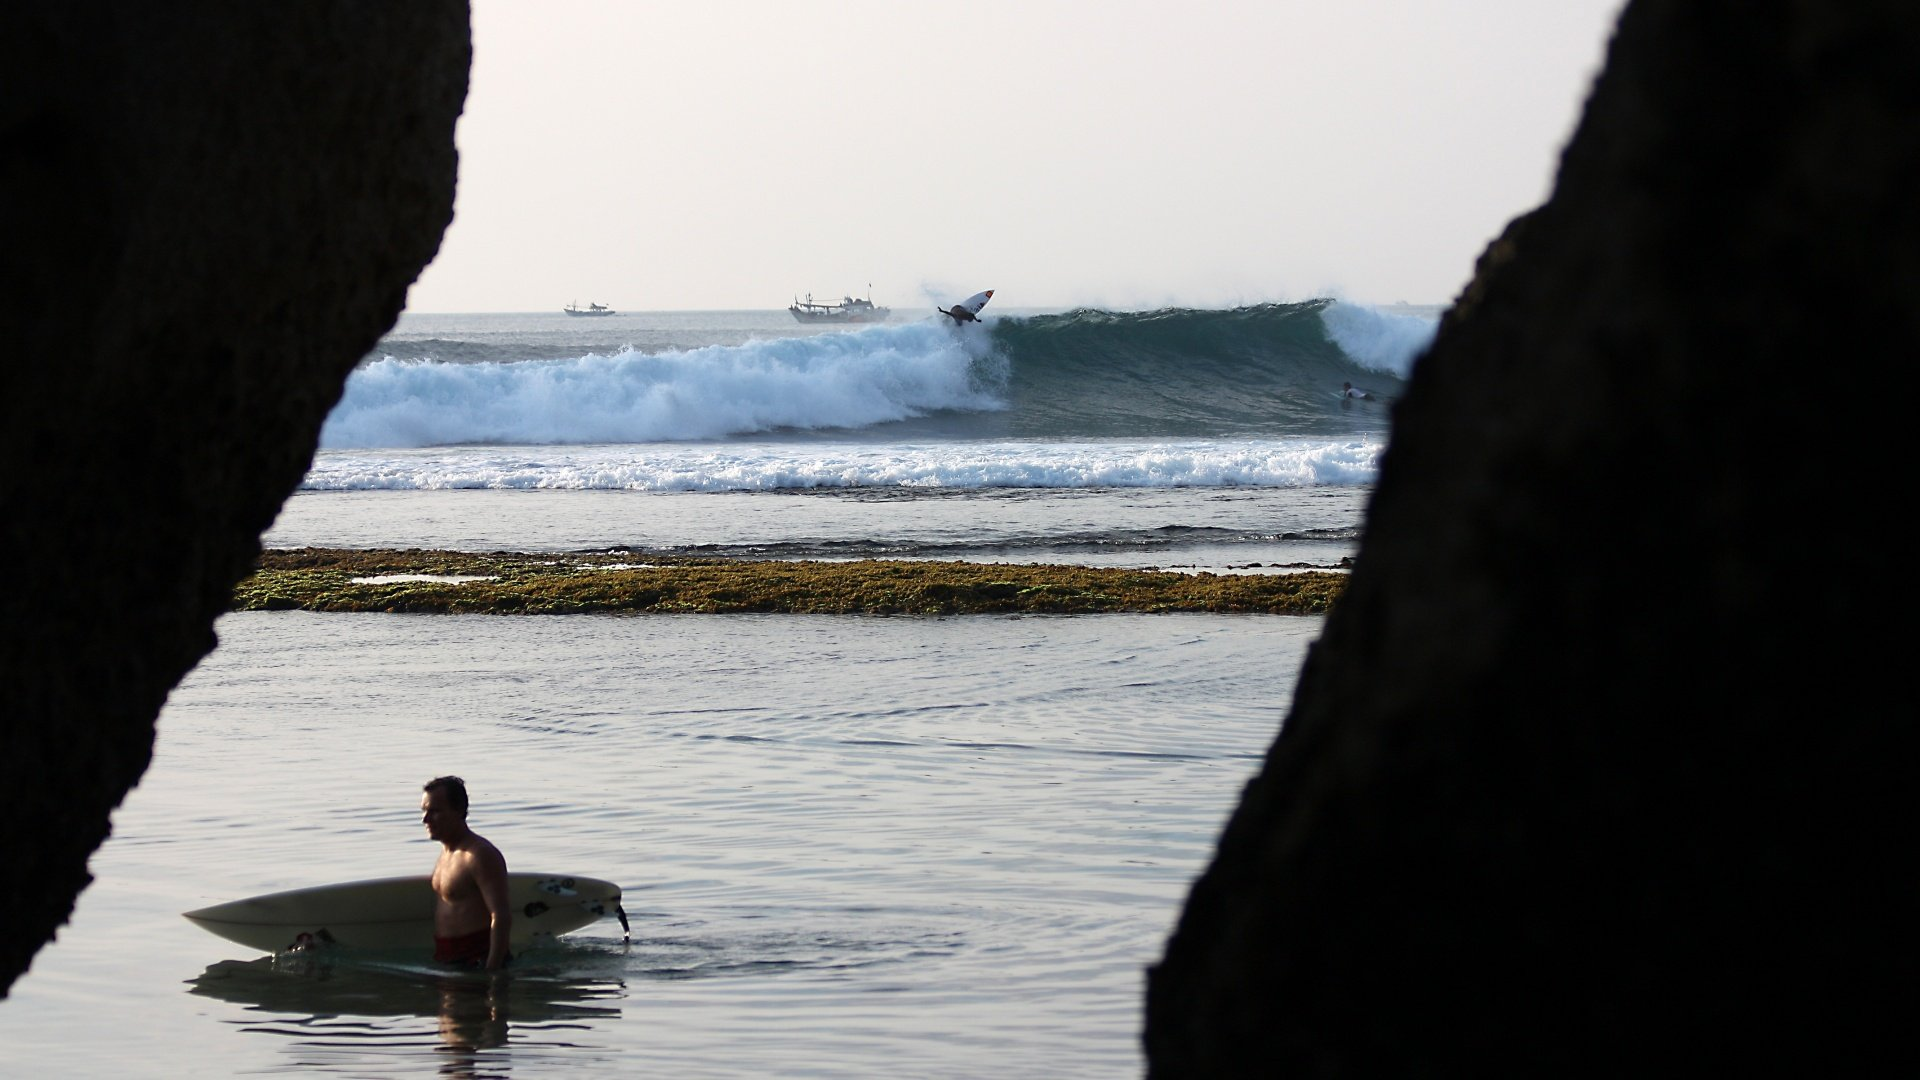 Howard Briscoe's photo of Uluwatu